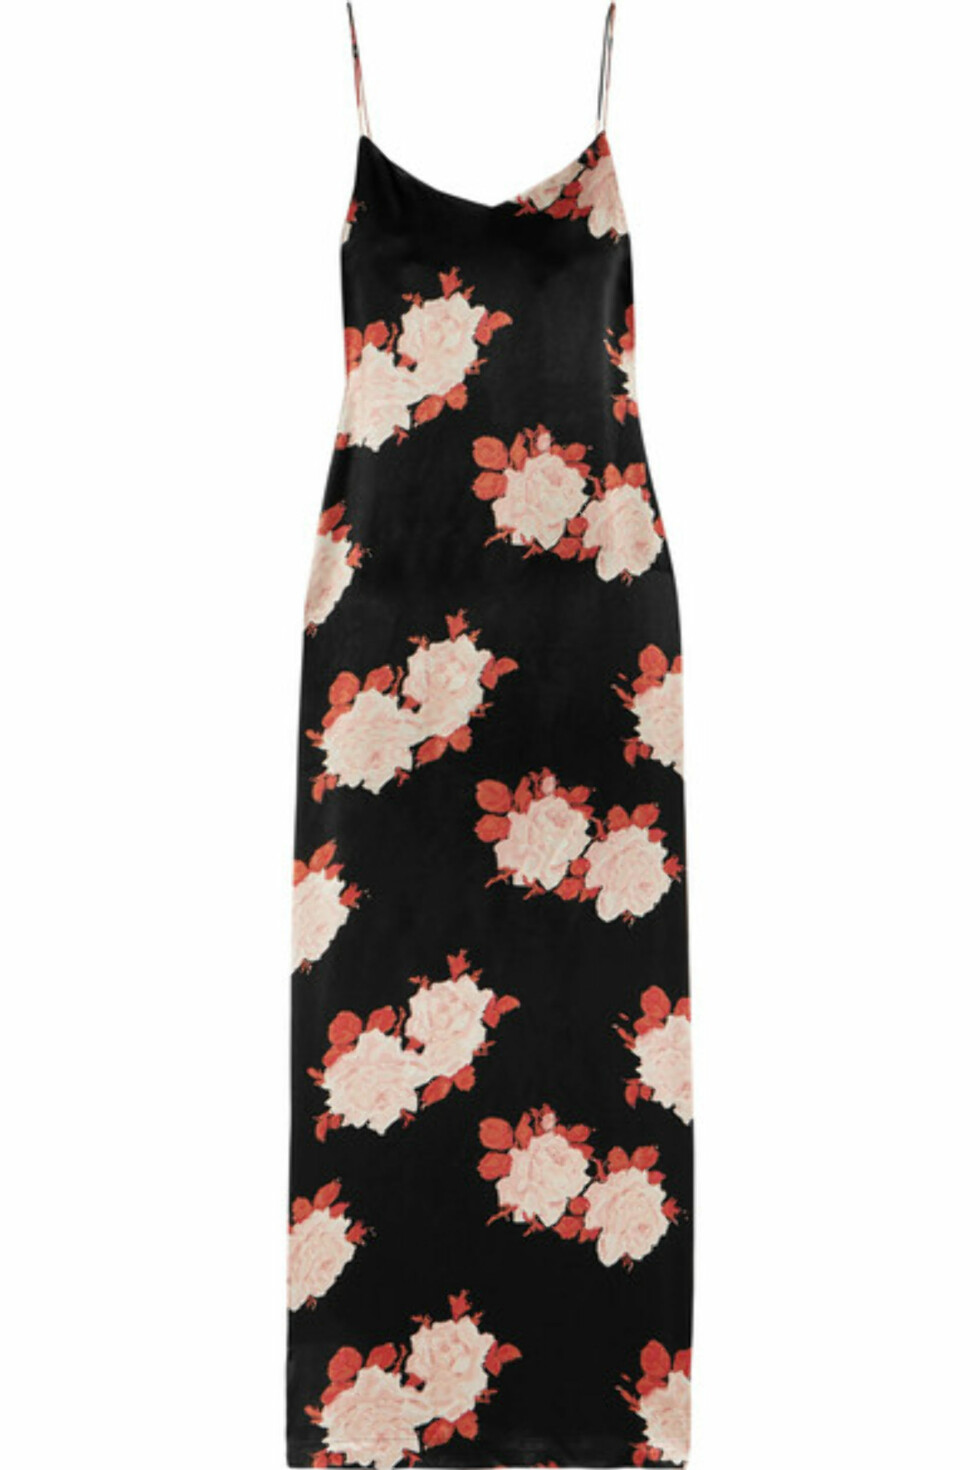 Kjole fra Ganni |1600,-| https://www.net-a-porter.com/no/en/product/884255/ganni/floral-print-satin-dress